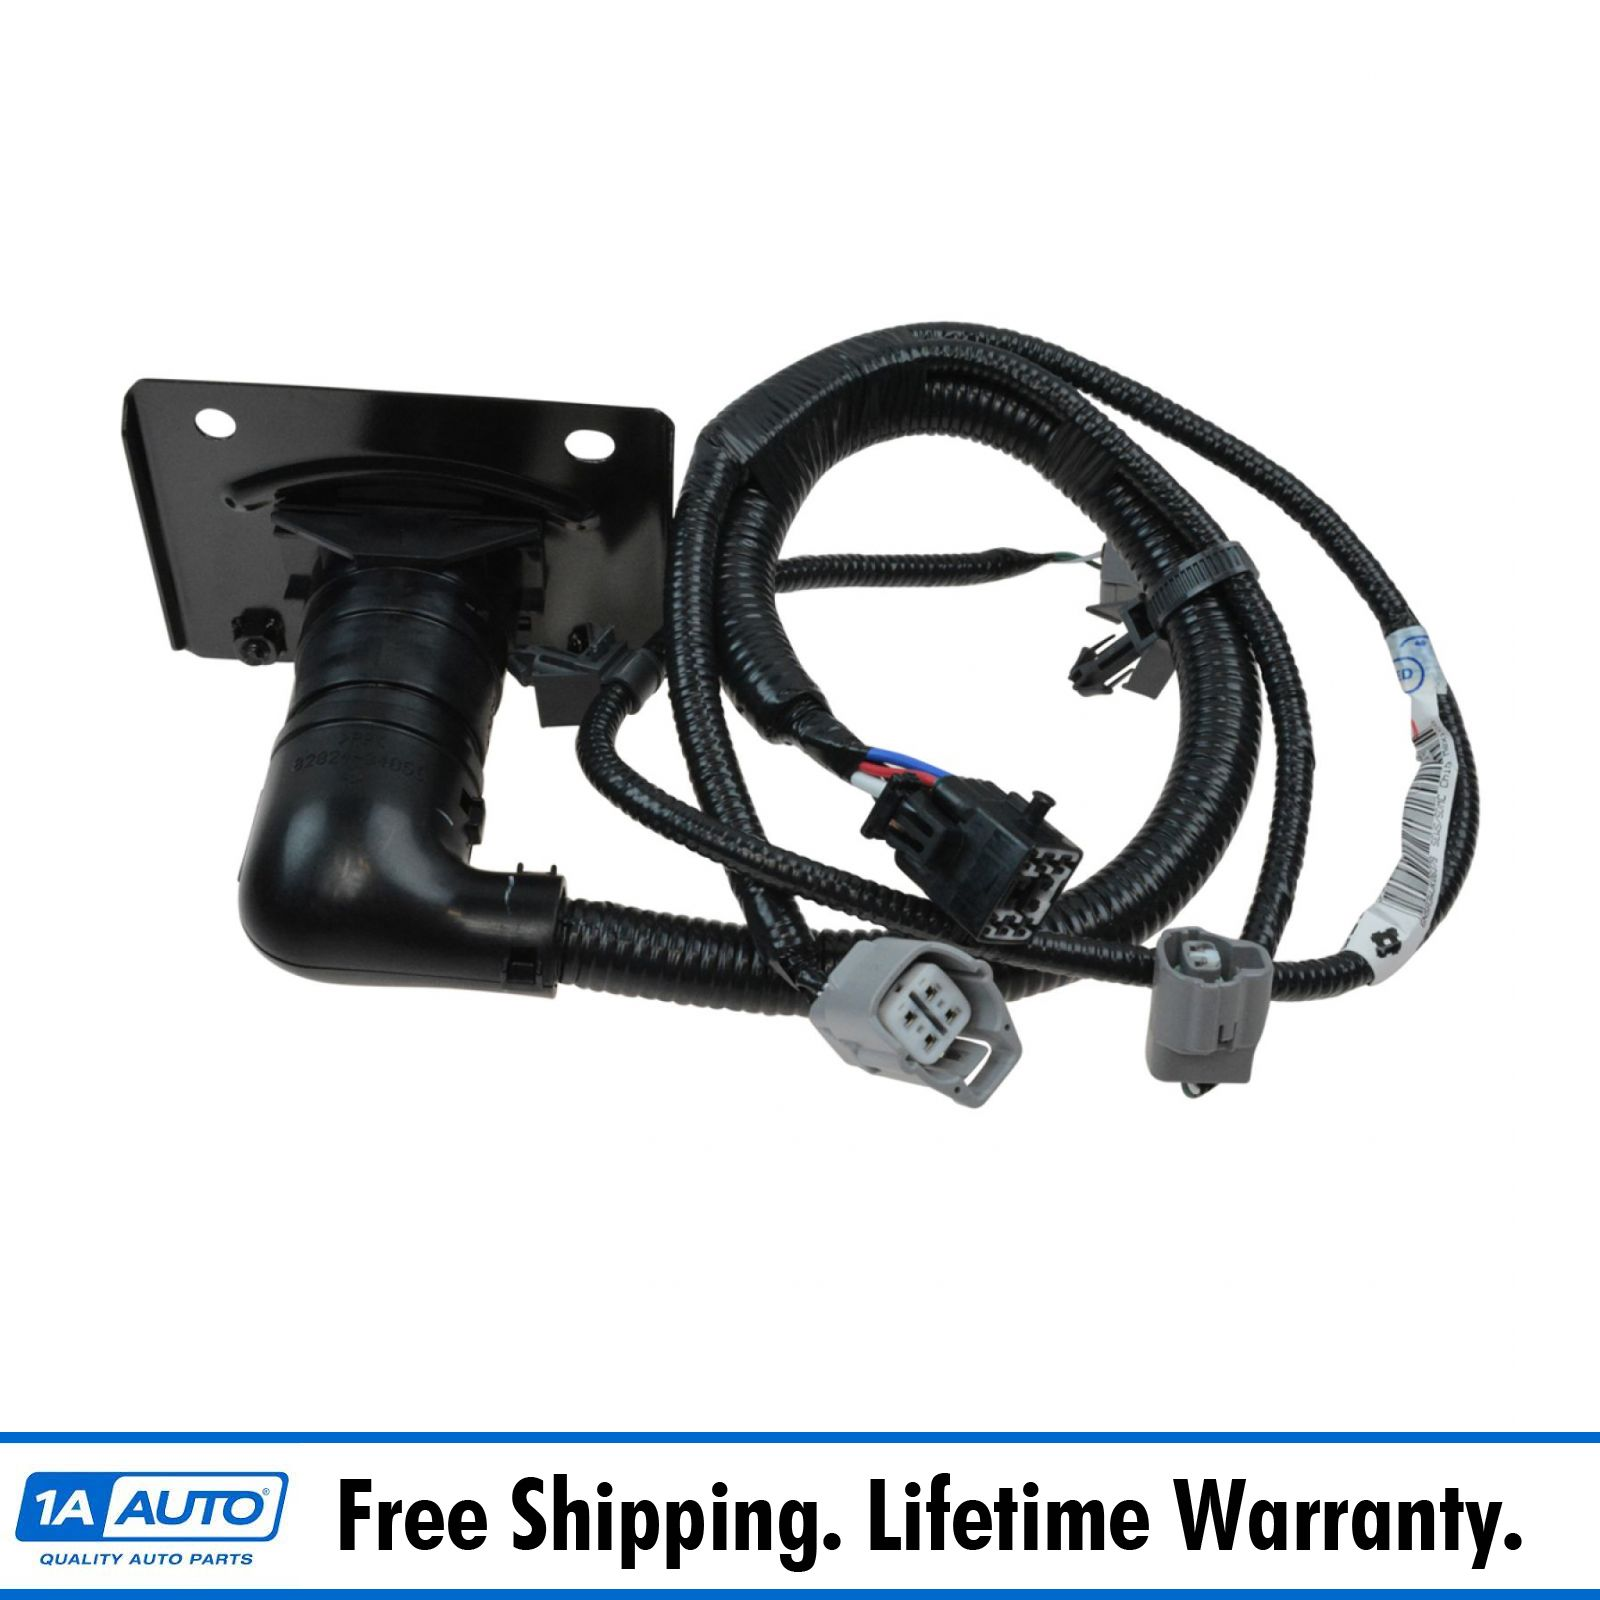 oem trailer tow hitch wiring harness 7 pin connector for. Black Bedroom Furniture Sets. Home Design Ideas